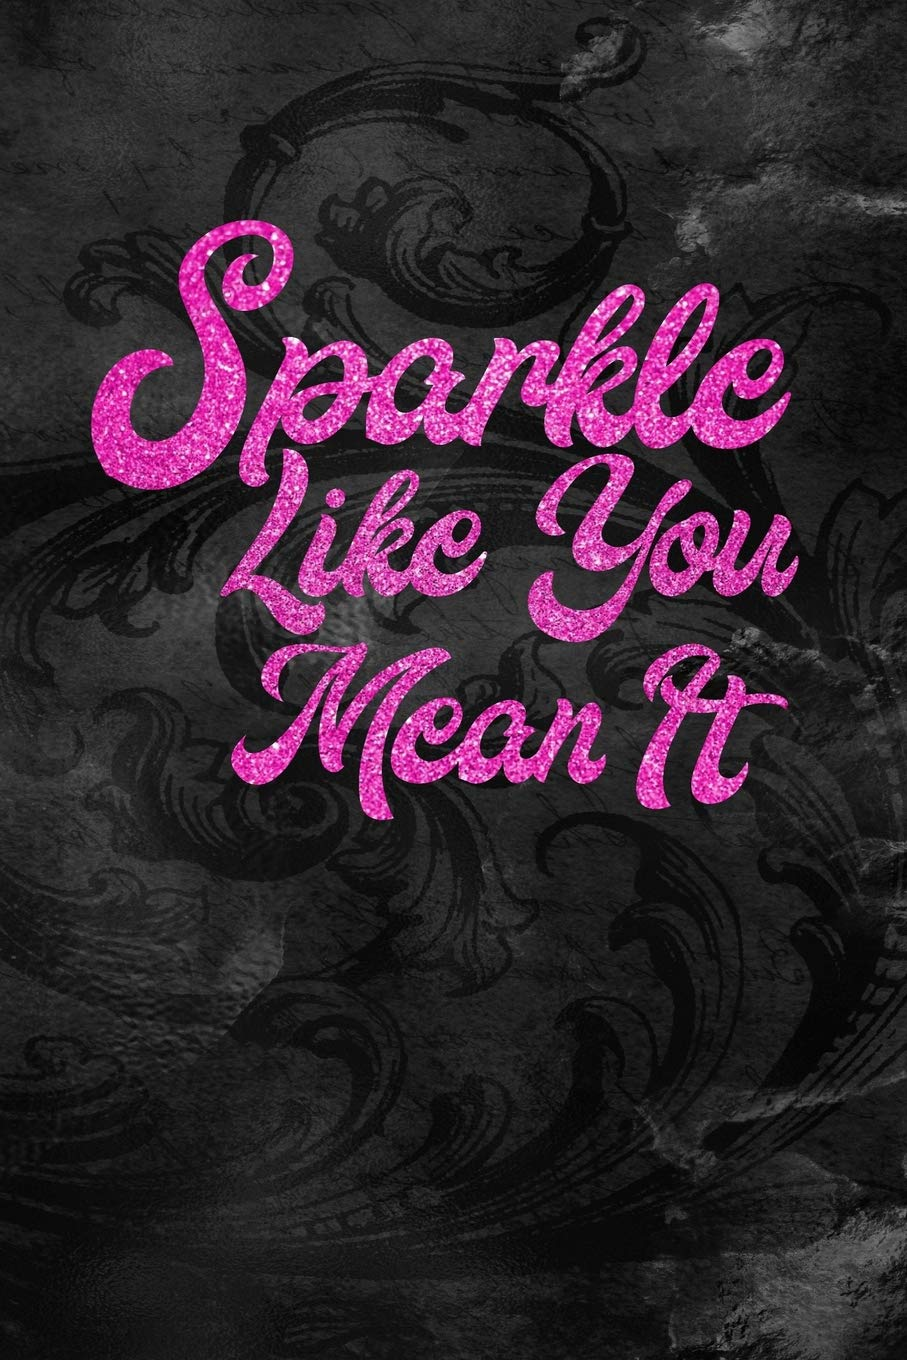 bf375d6deae7 Sparkle Like You Mean It: Shopping Journal To Do List Organizer ...